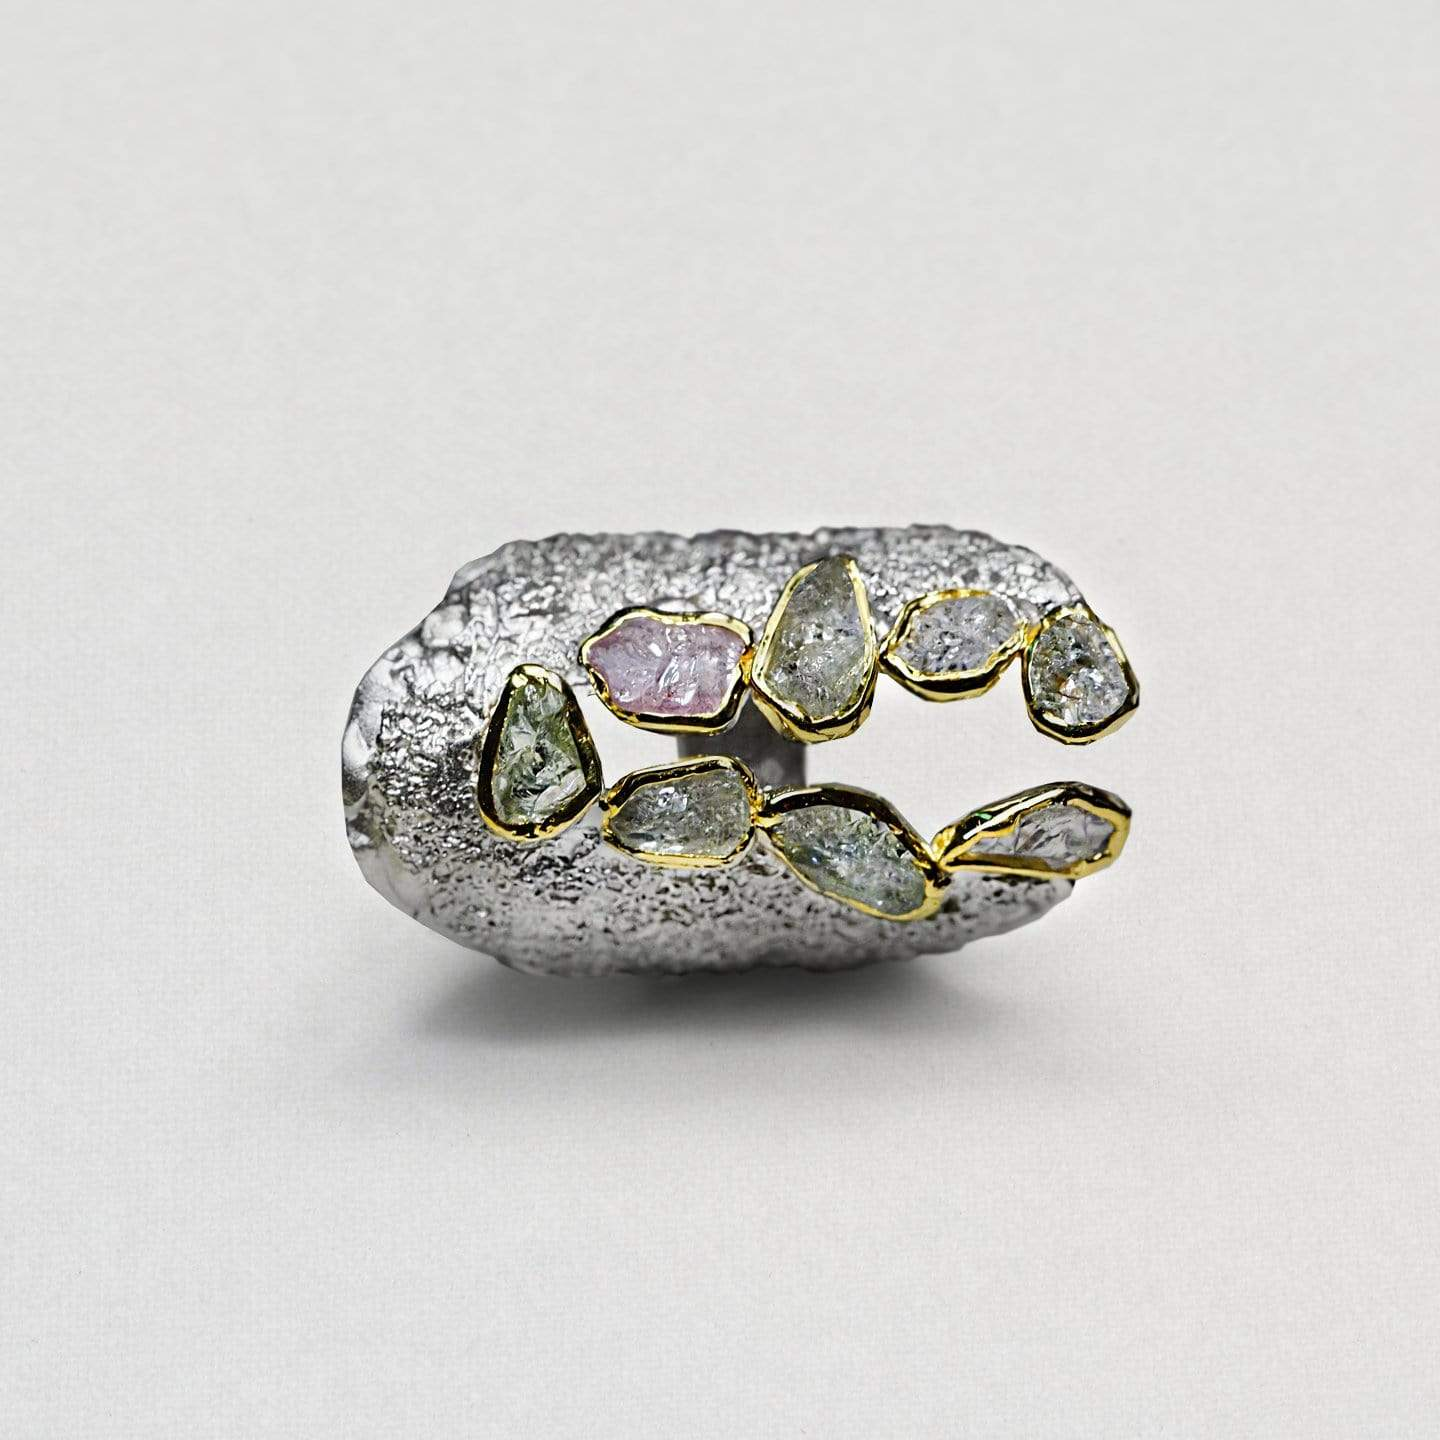 Conligia Ring, Gold, Handmade, Rhodium, Sapphire, silver, spo-disabled, StoneColor:PastelColor, Style:Everyday, Type:StoneCandyScattered Ring